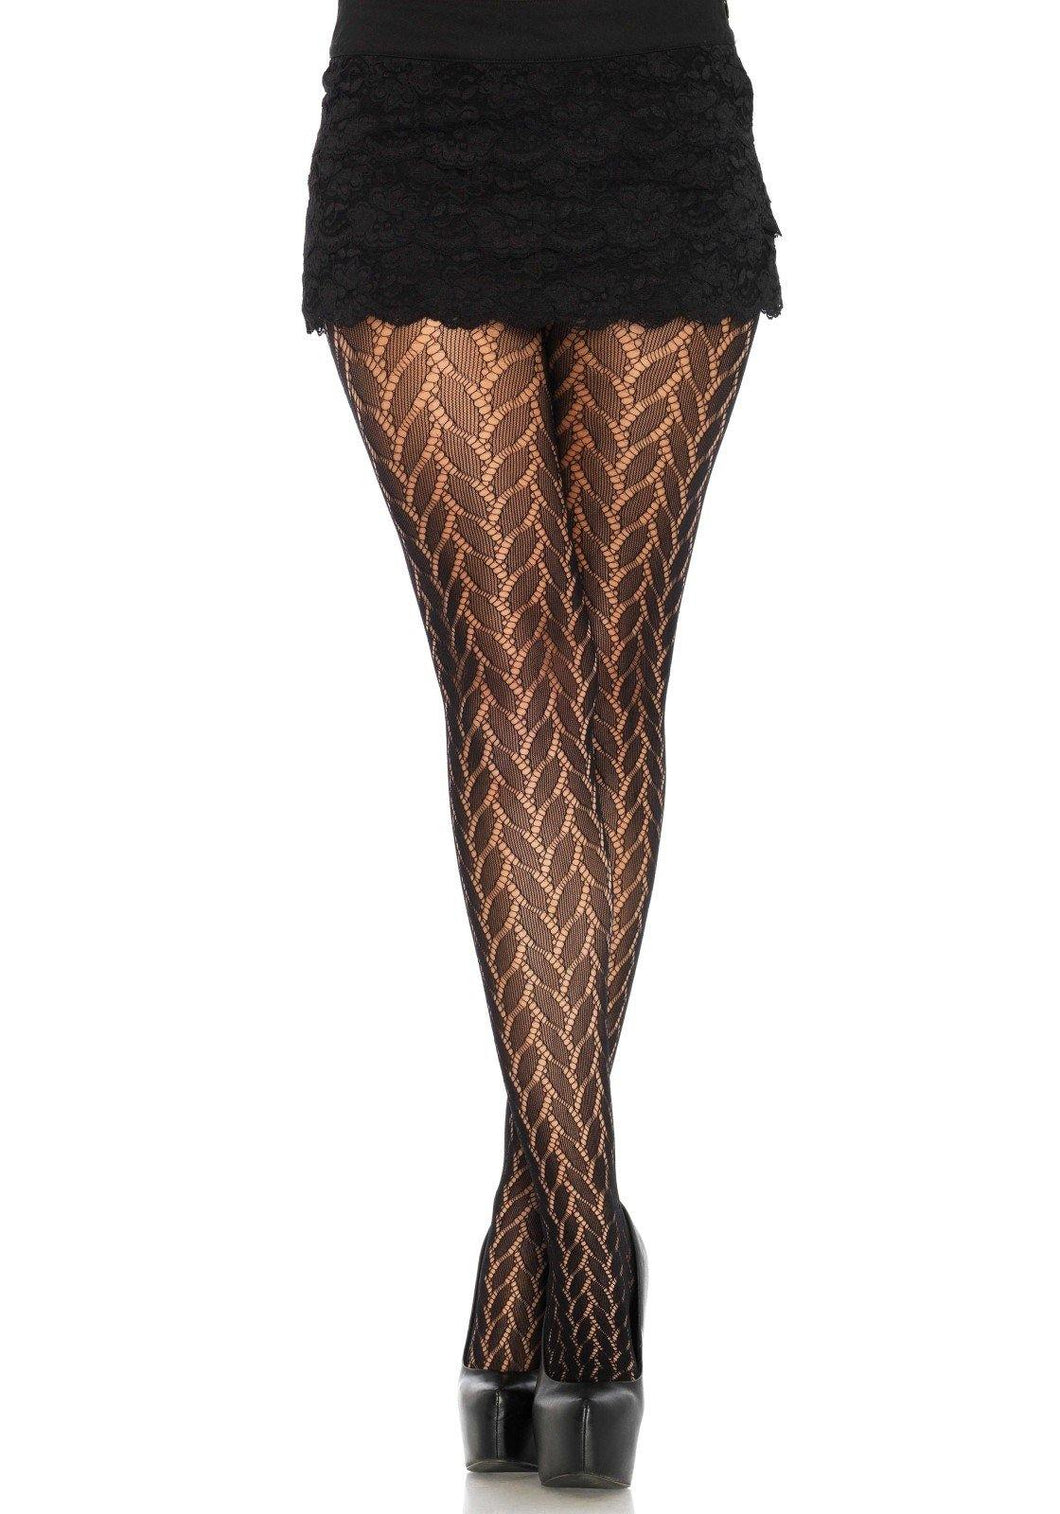 Black Plaited Lace Fashion Tights - Amore Lingerie